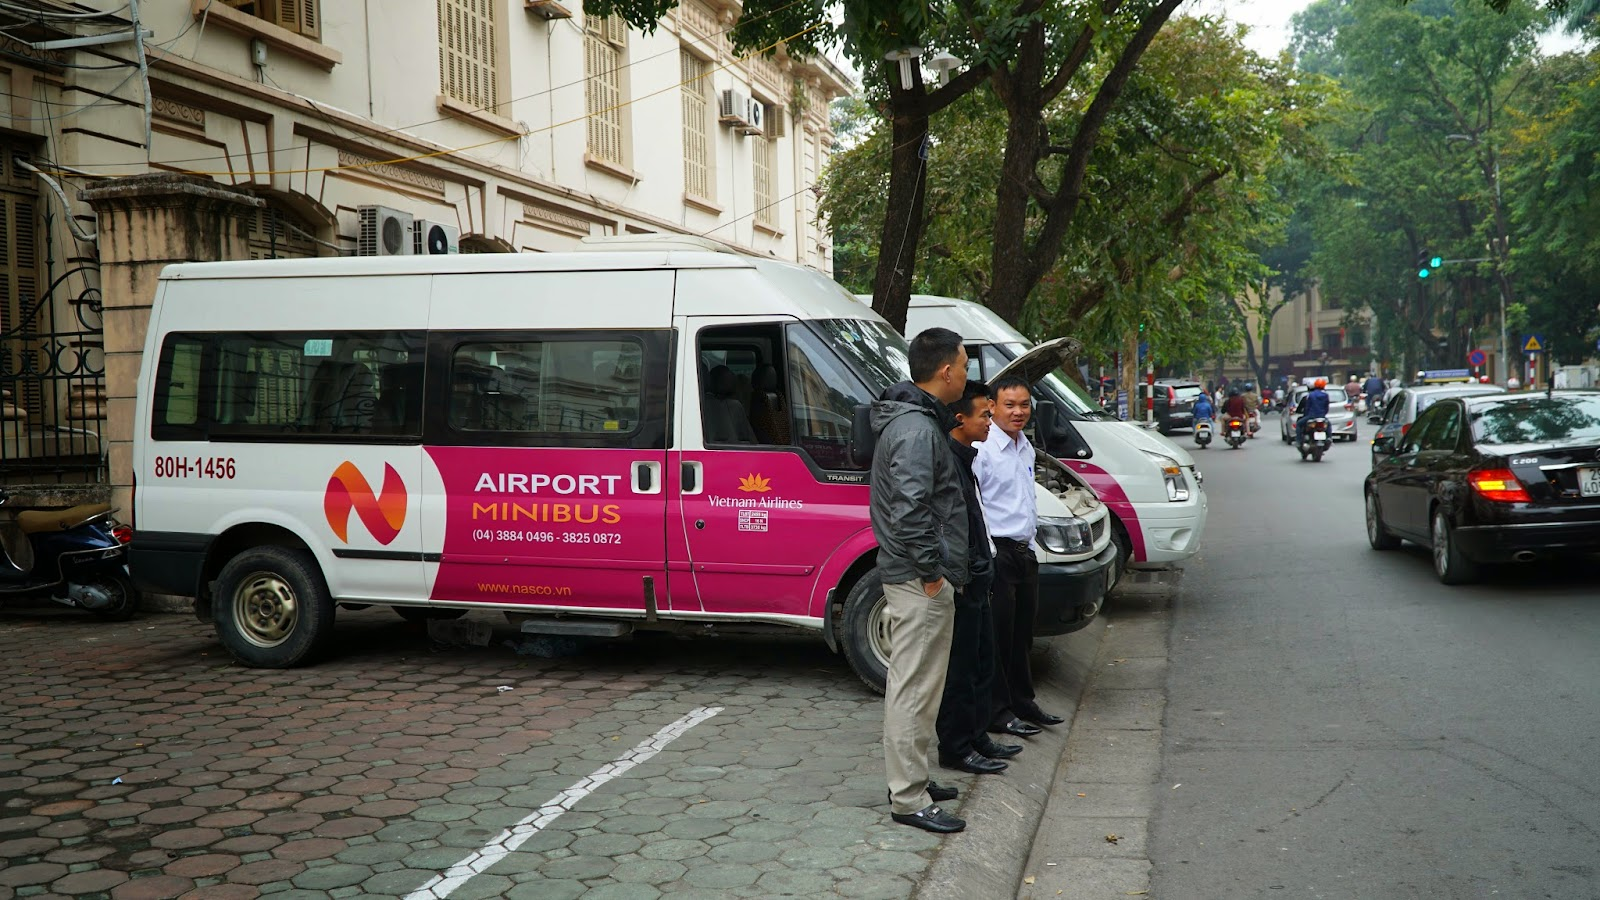 One of the easiest and cheapest ways to get from the airport to Hanoi is by airport shuttle. Taking Vietnam Airlines' airport shuttle, you will be dropped off at their office near Old Quarter